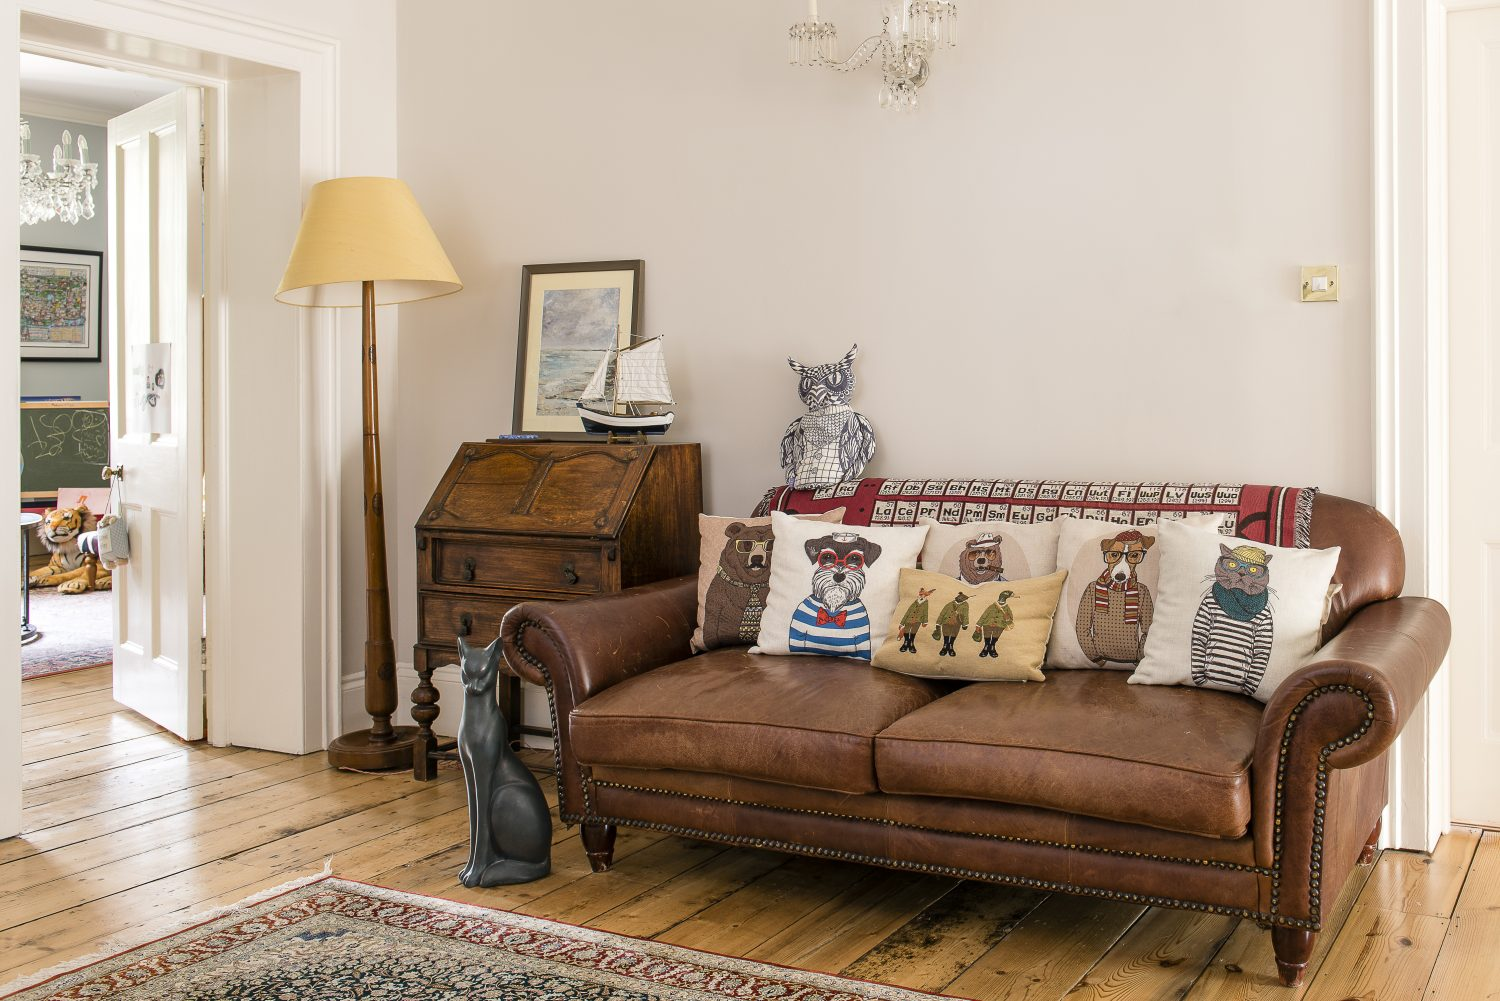 A sofa on the landing. The original floorboards were sanded and restored. The animal cushions are by Sass & Belle